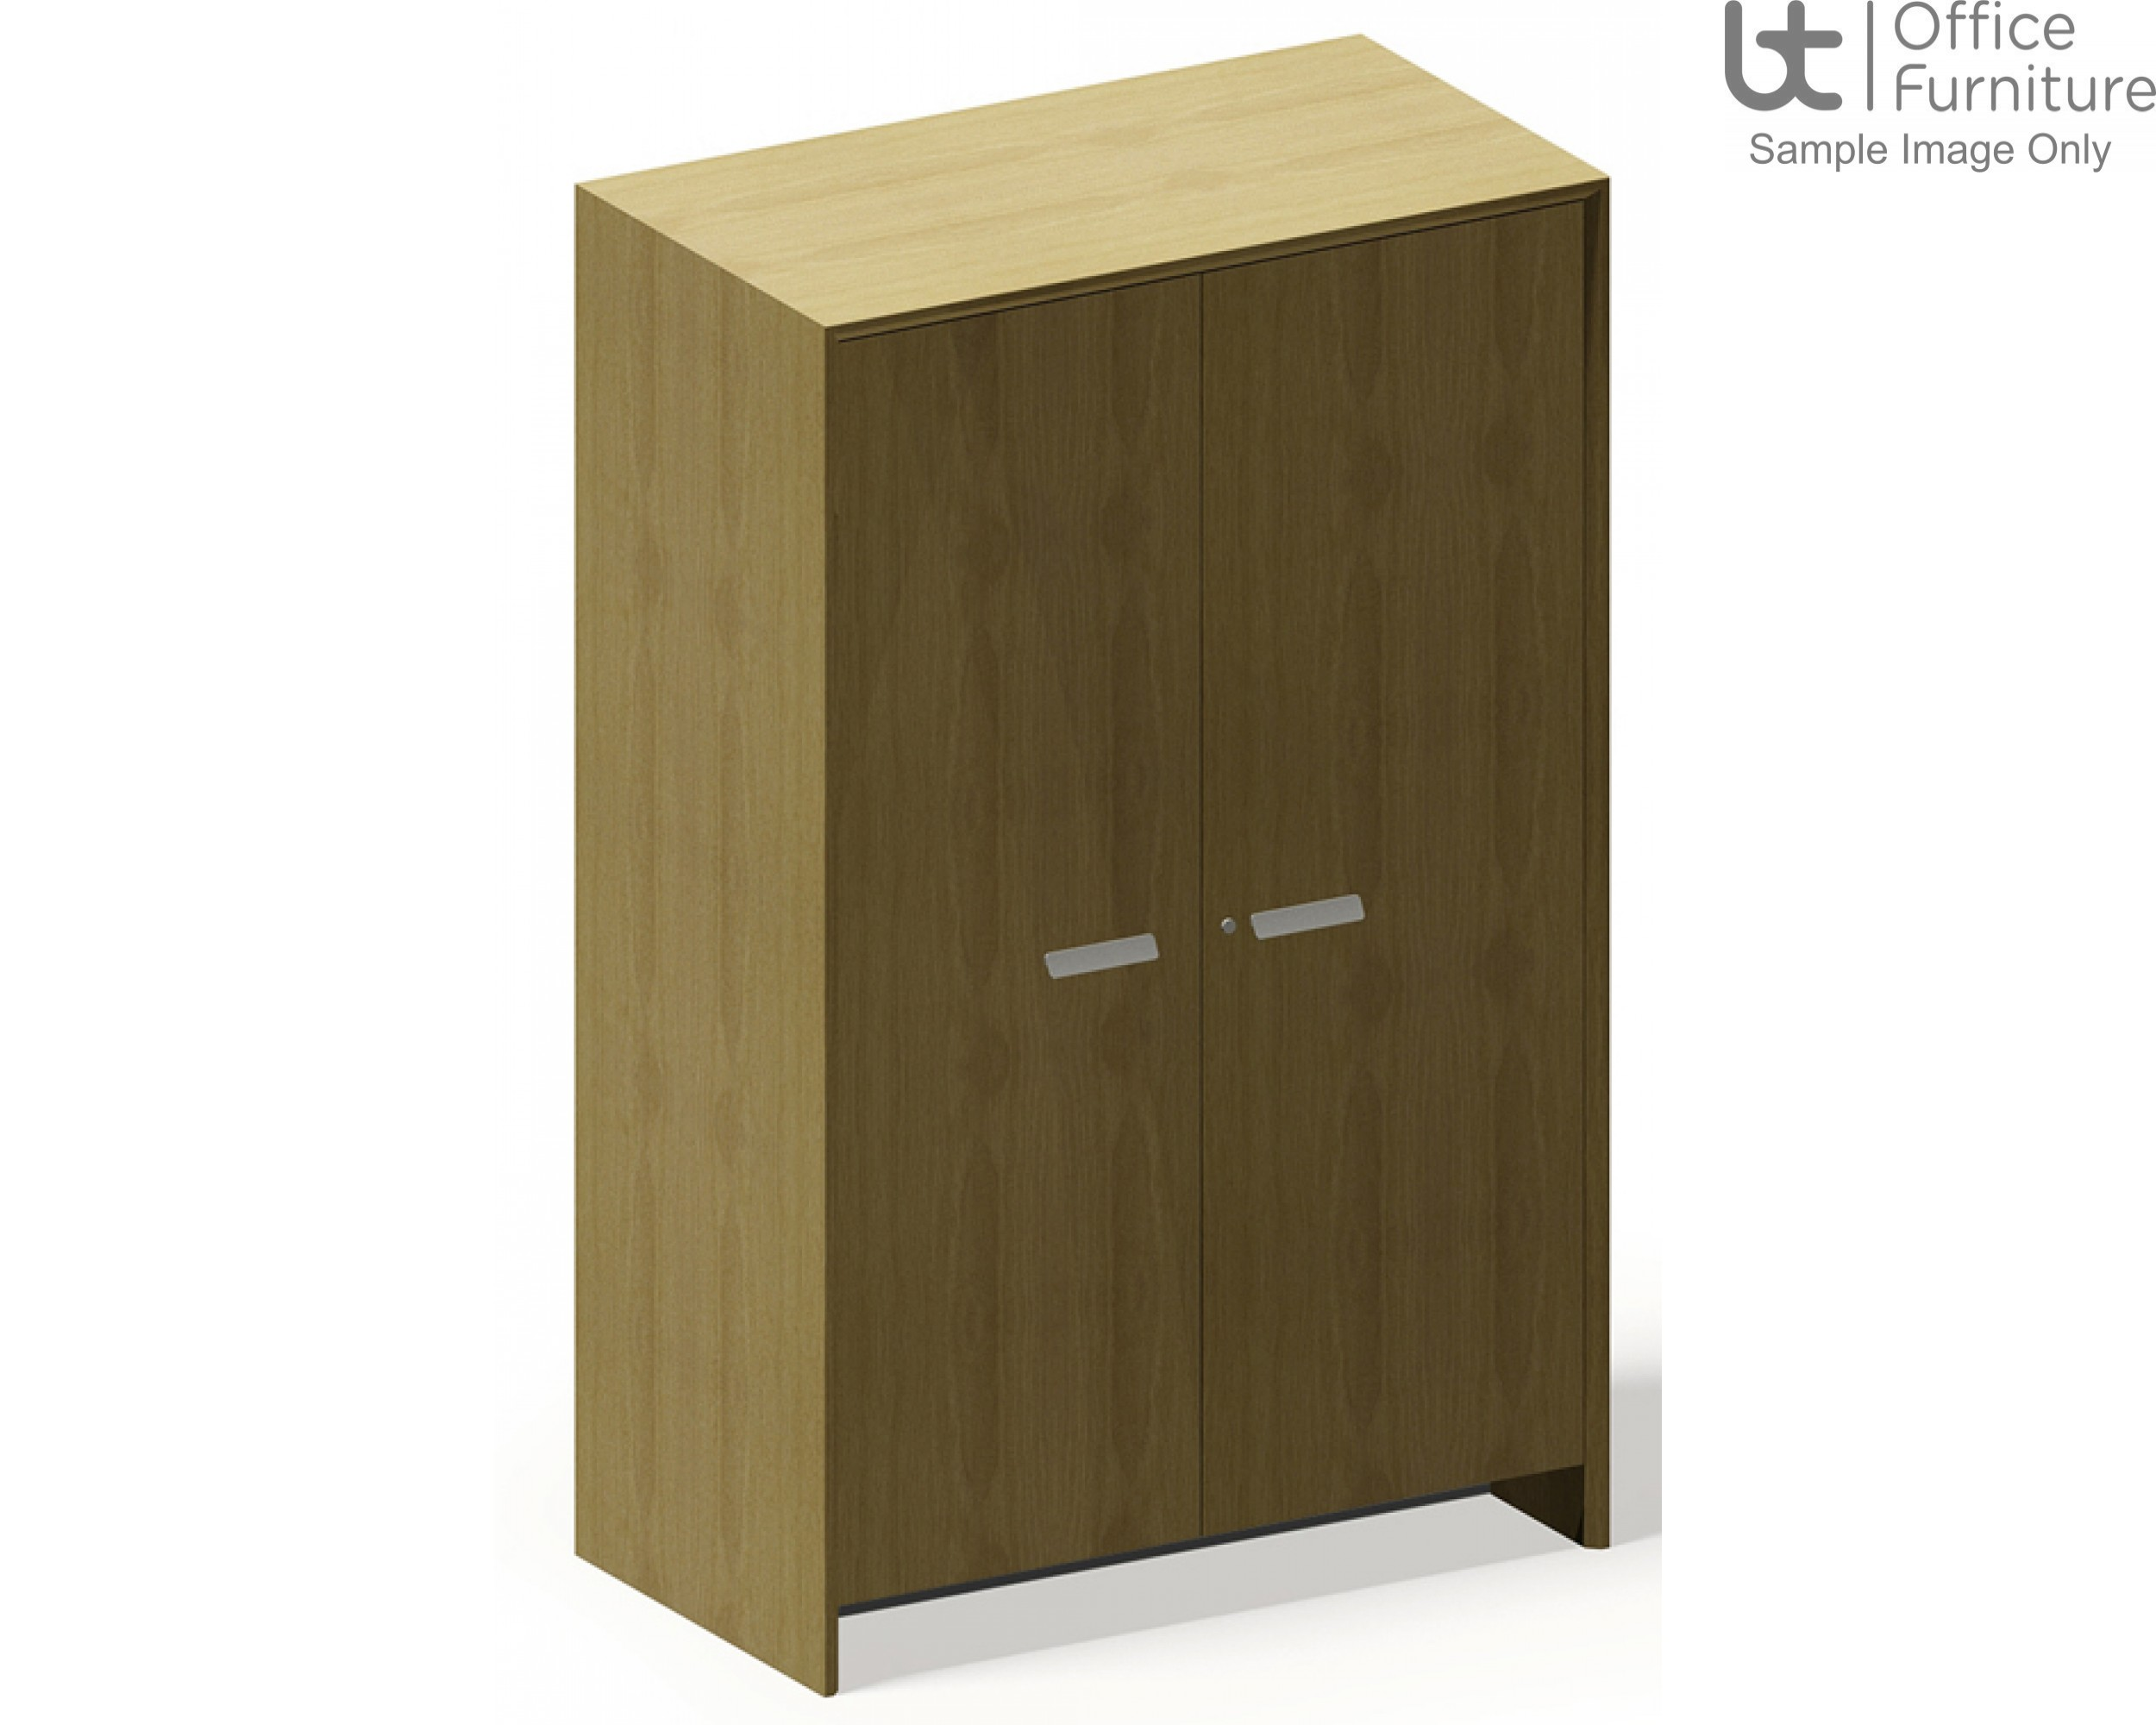 Aston Tall Cupboard with Single Vertical Division and Six Adjustable Narrow Shelves